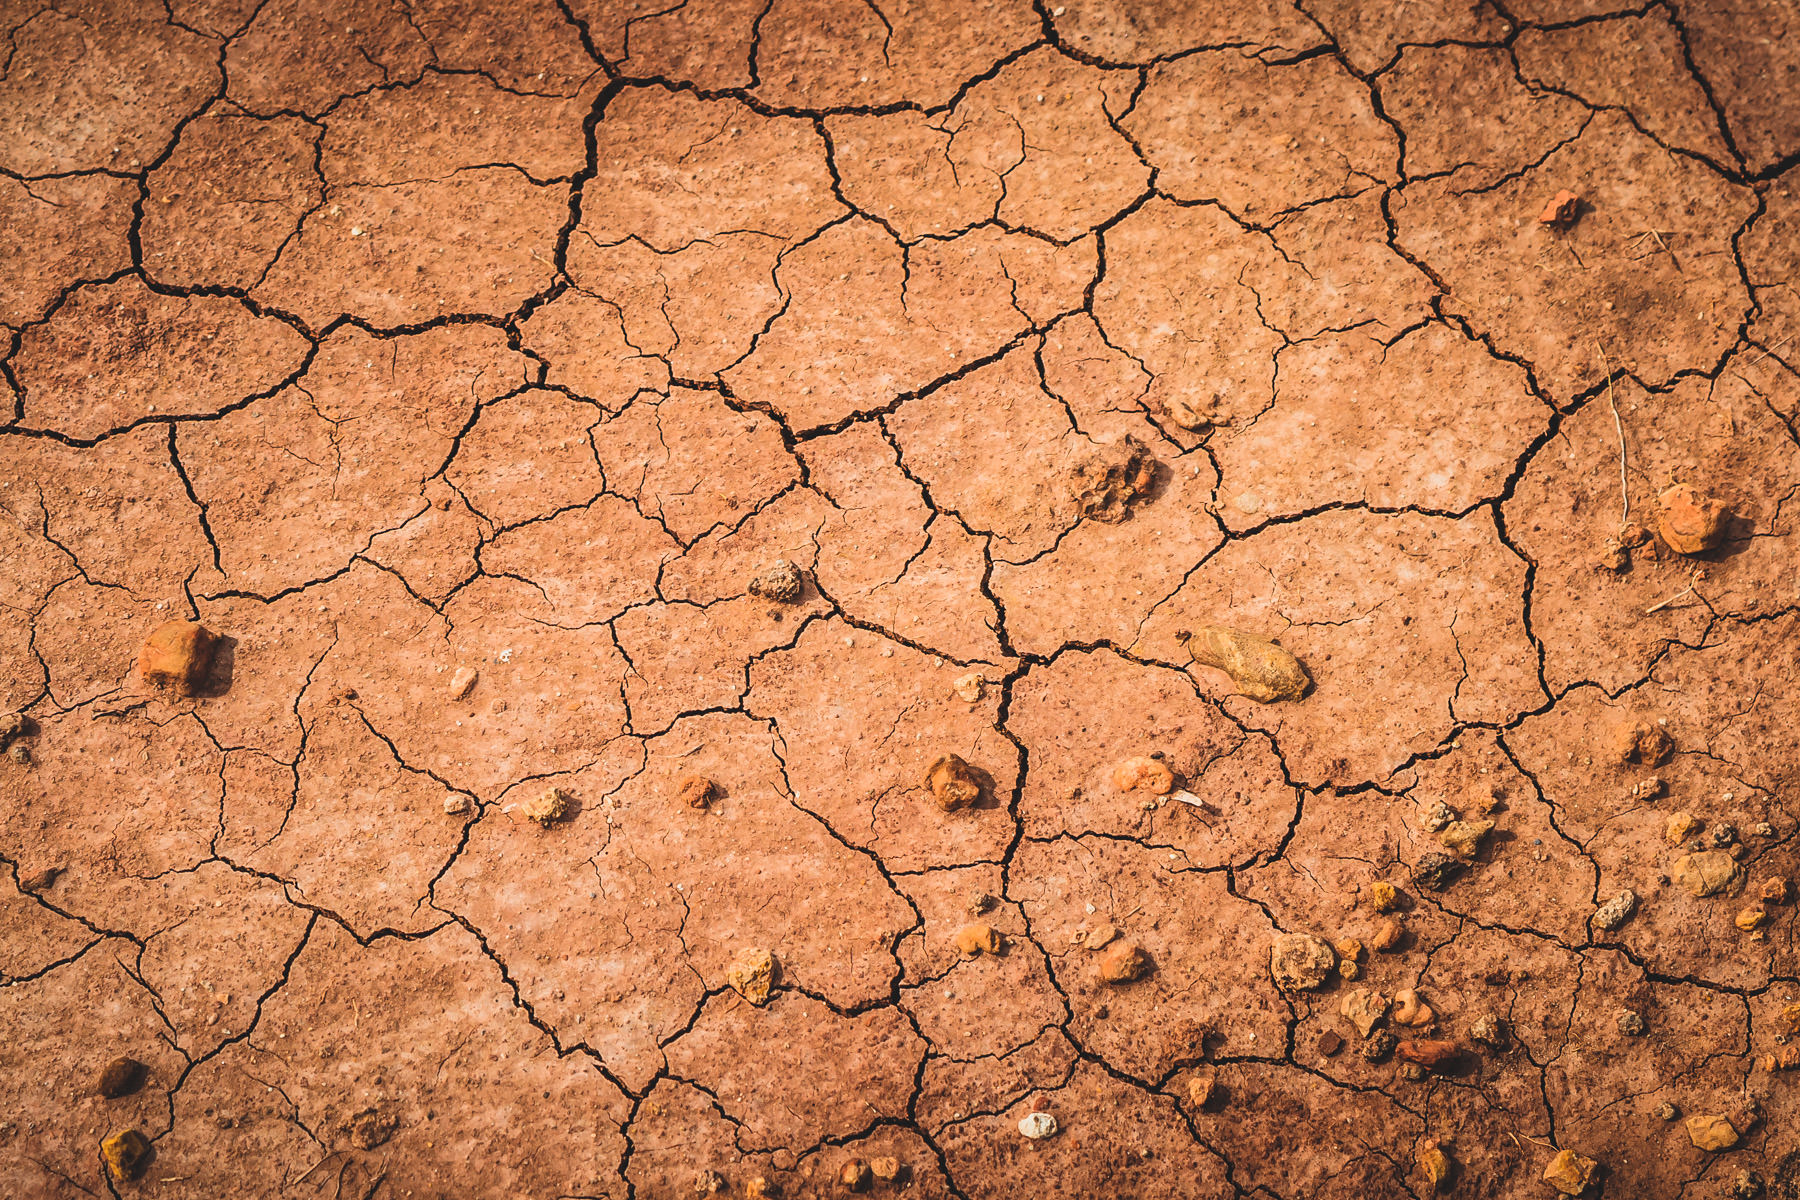 Dried mud in Palo Duro Canyon, Texas.